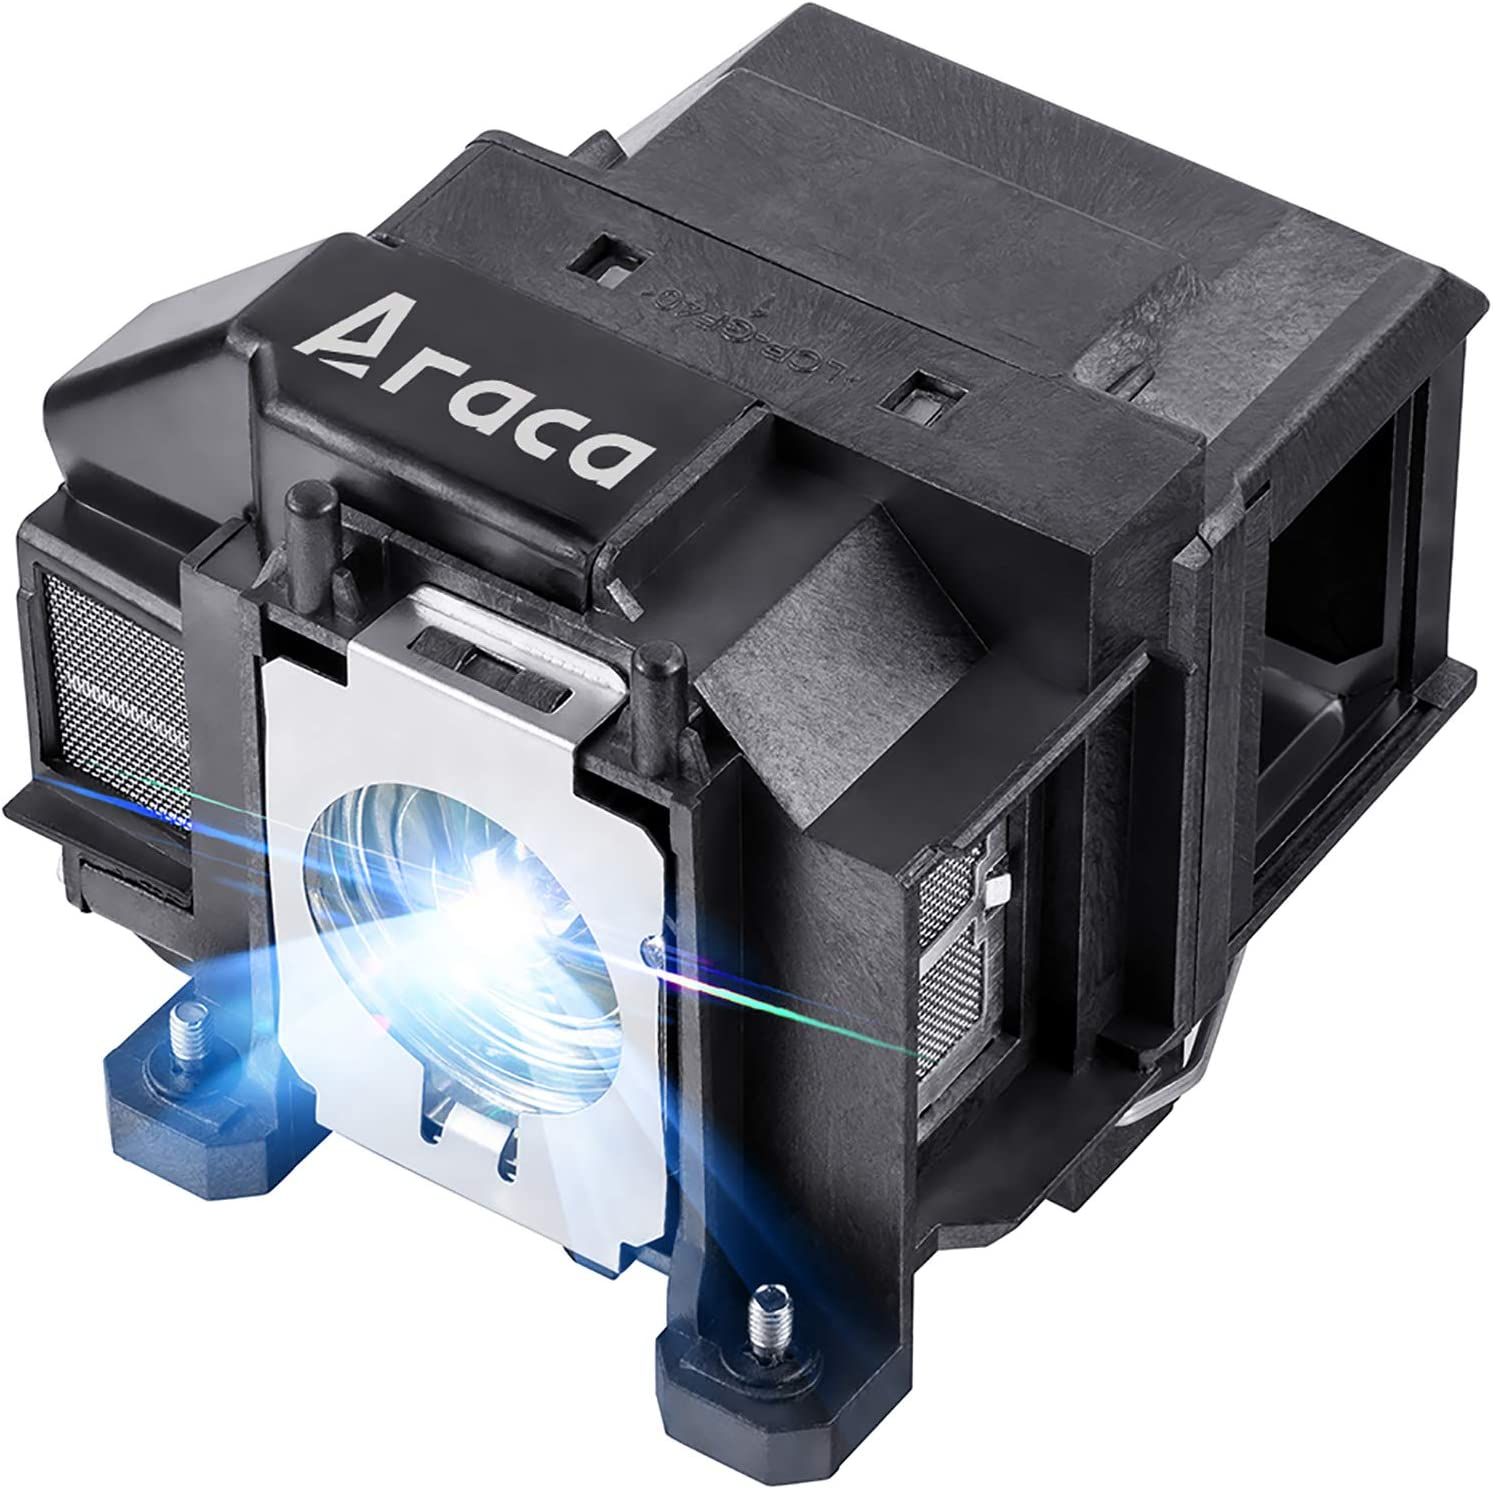 Araca ELPLP67 /V13H010L67 Projector Lamp for Epson EX5210 EX7210 H433A EB-X14 EX3210 H429A EX3212 EB-X11 VS220 W12+ X14+ VS310 H518A VS320 Replacement Projector Lamp Economical